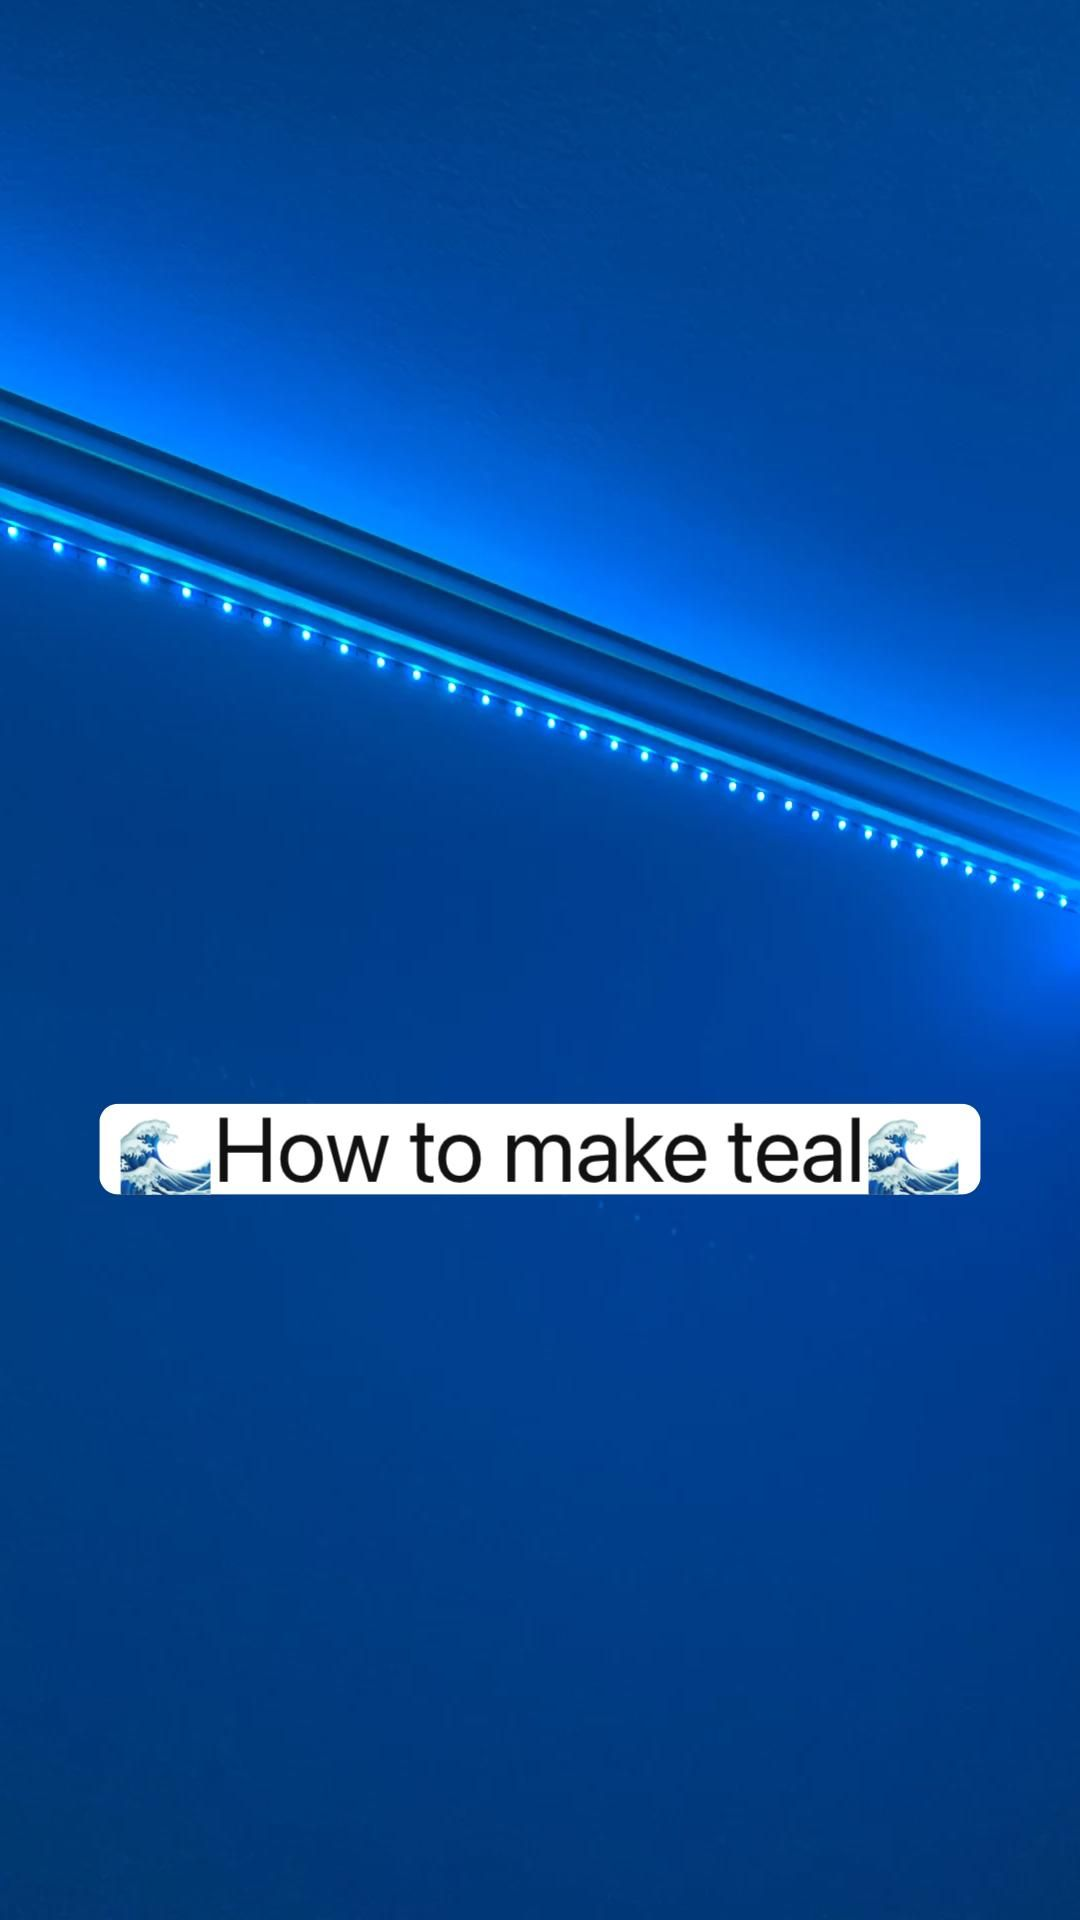 100+ 🌊How to make teal🌊